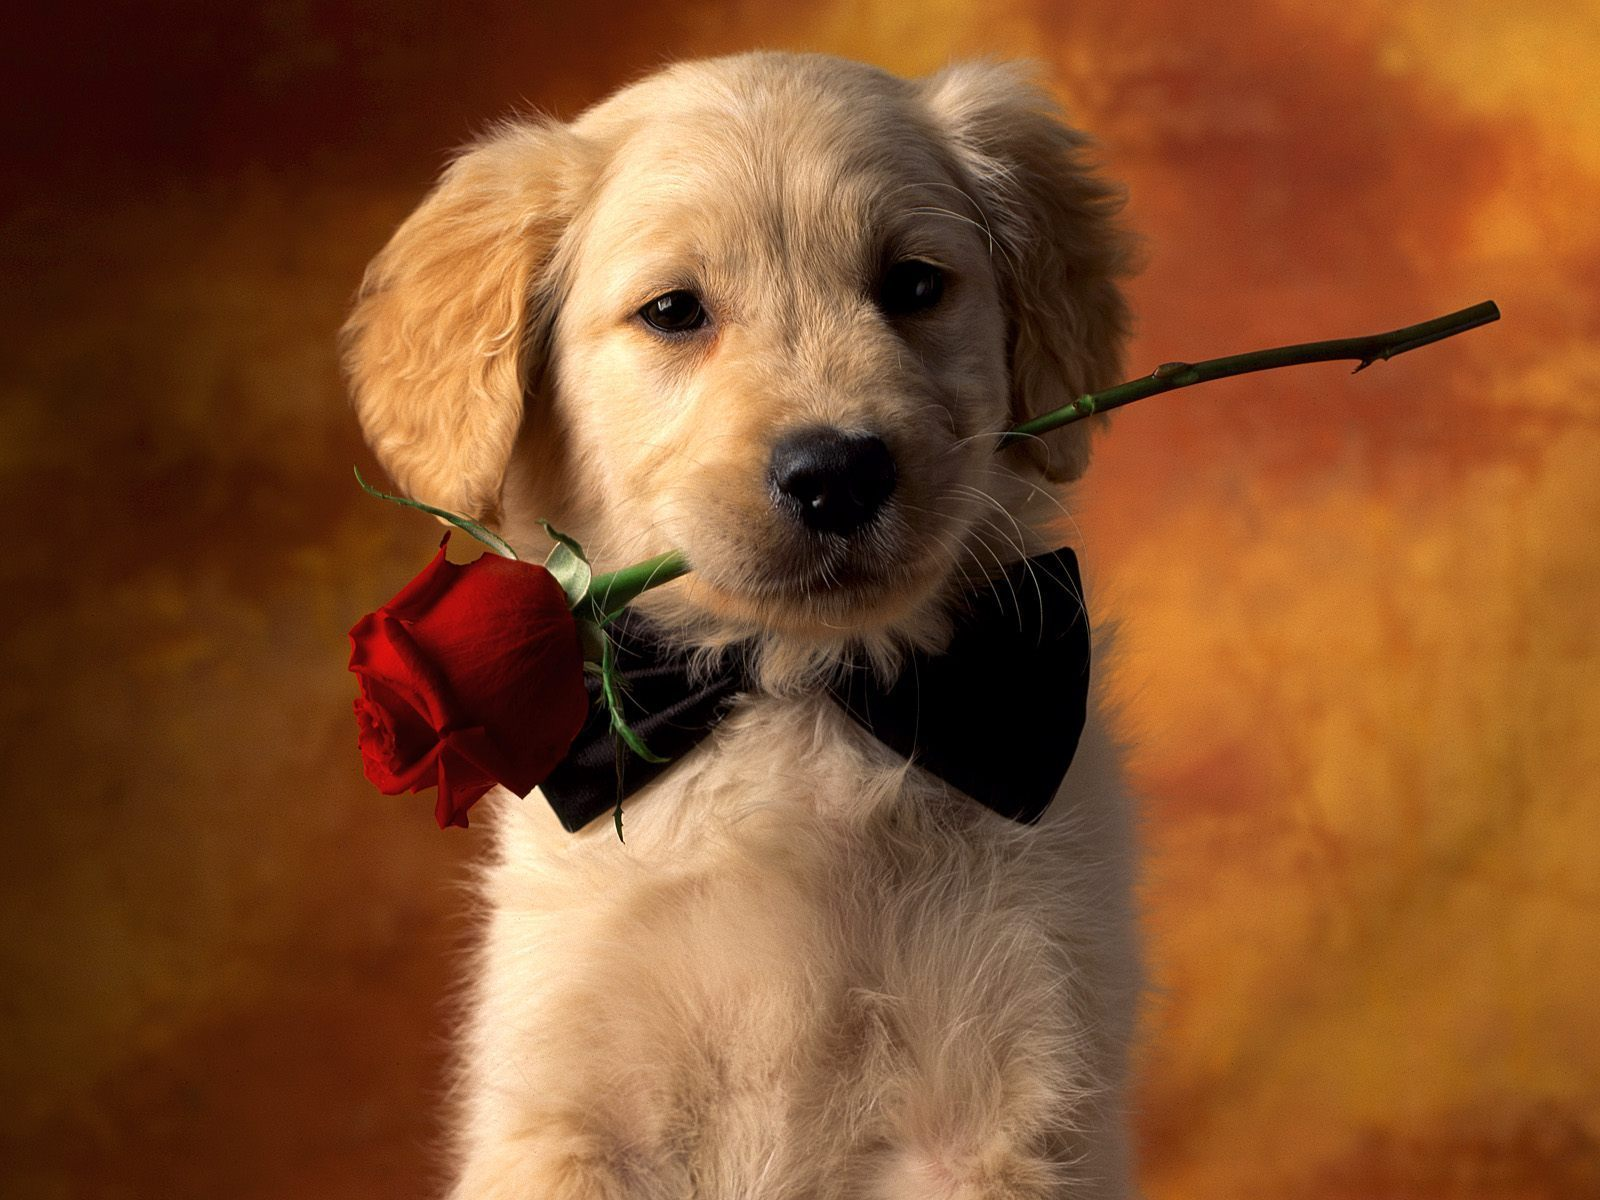 Cute Dogs And Puppies Wallpapers Wallpaper  dogs Cute dogs